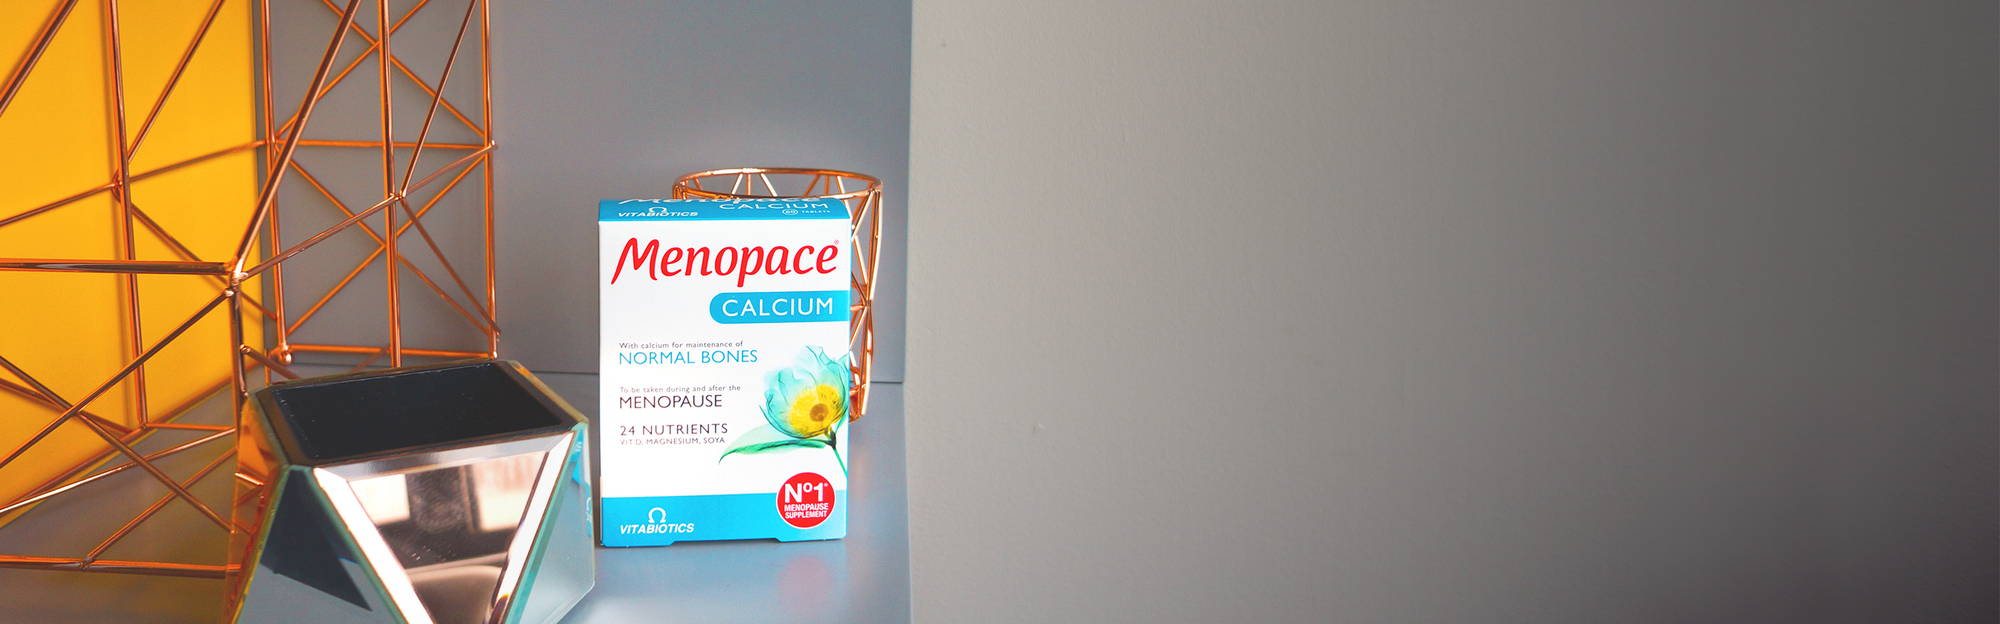 As oestrogen levels decrease, bone density can do the same. Menopace Calcium includes nutrients for bone health, including calcium and vitamin D.